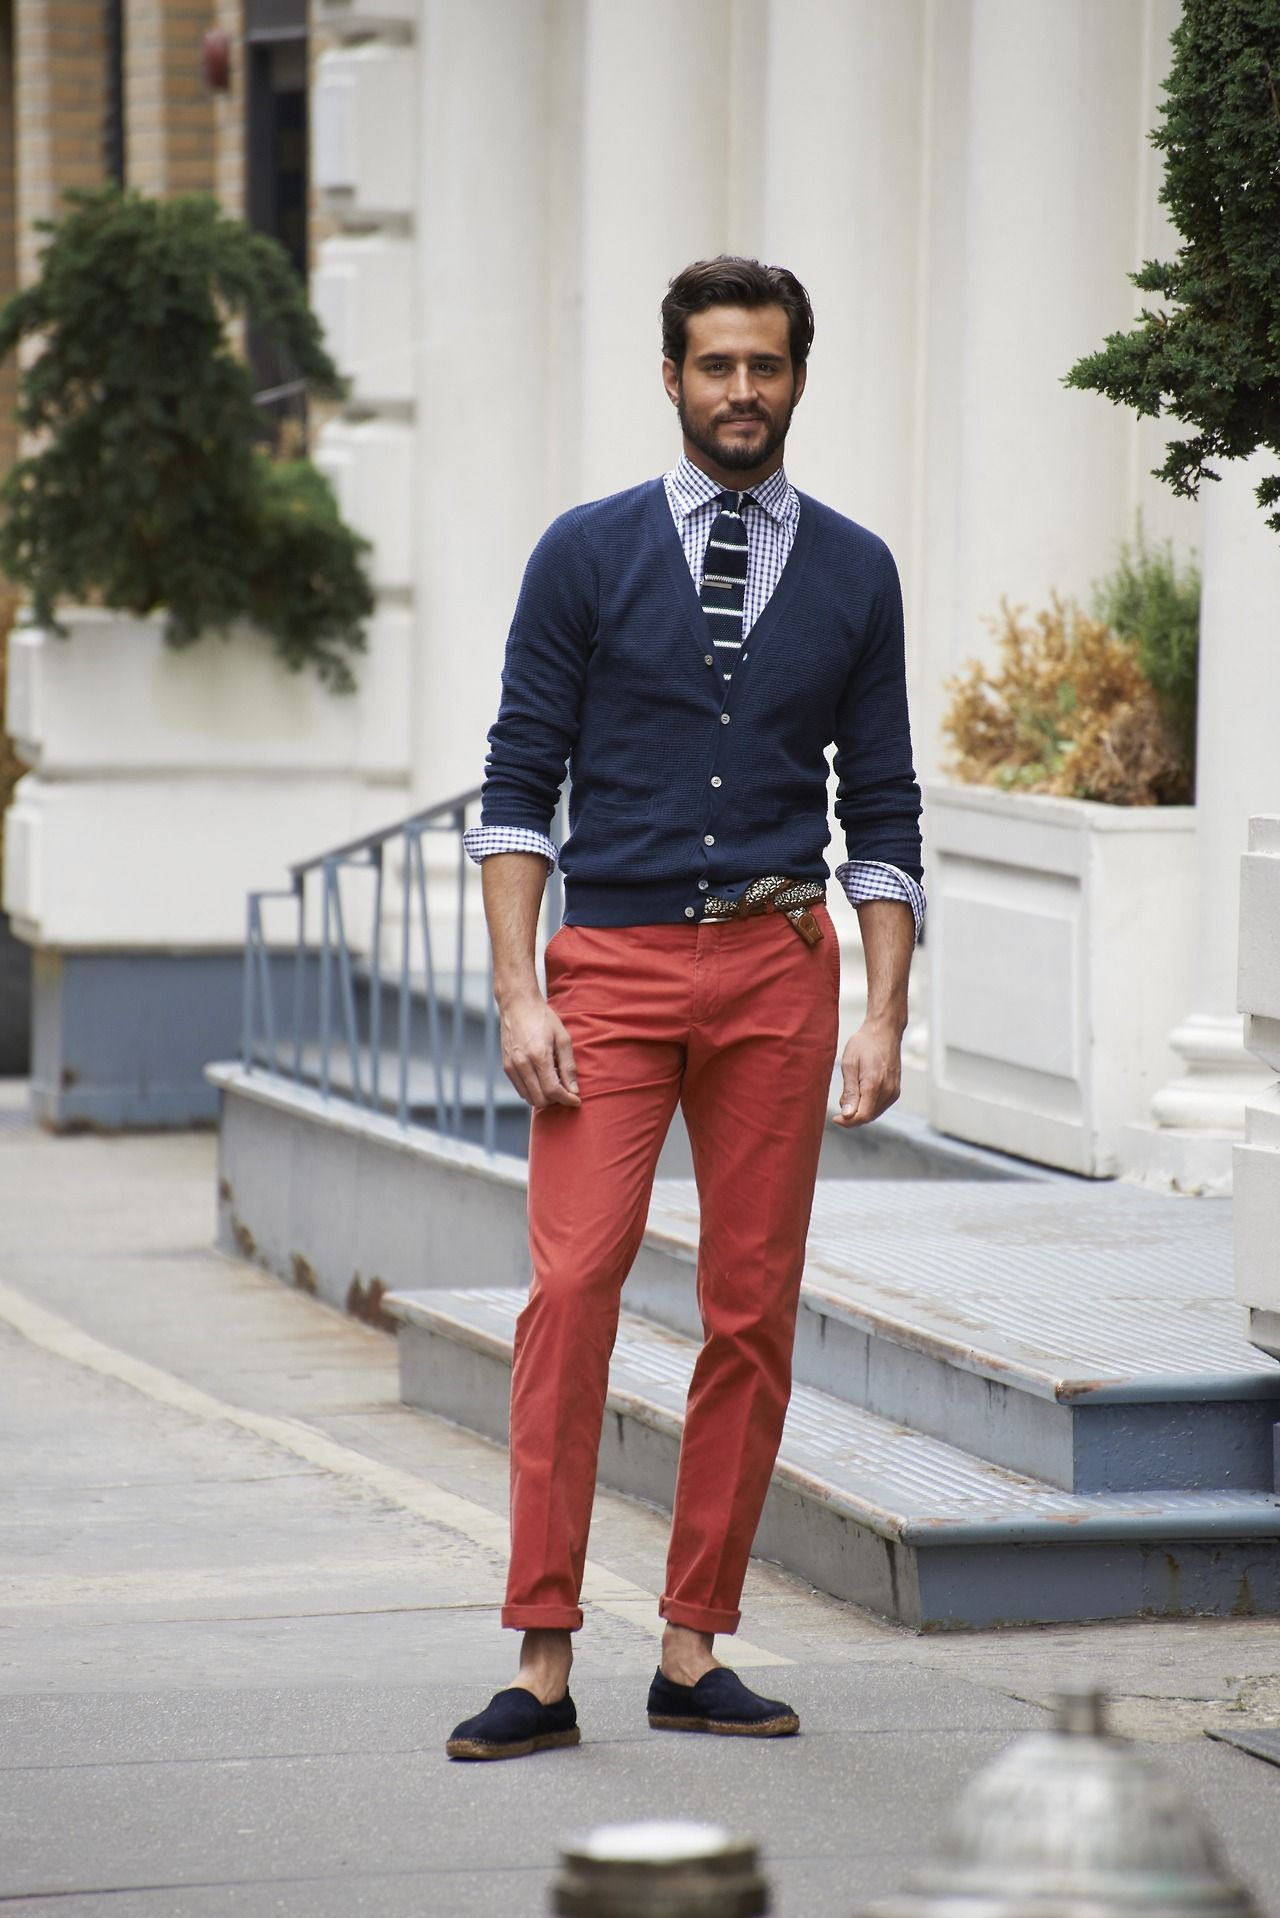 Copia el look: pantalones color ladrillo, sweater azul marino y ...